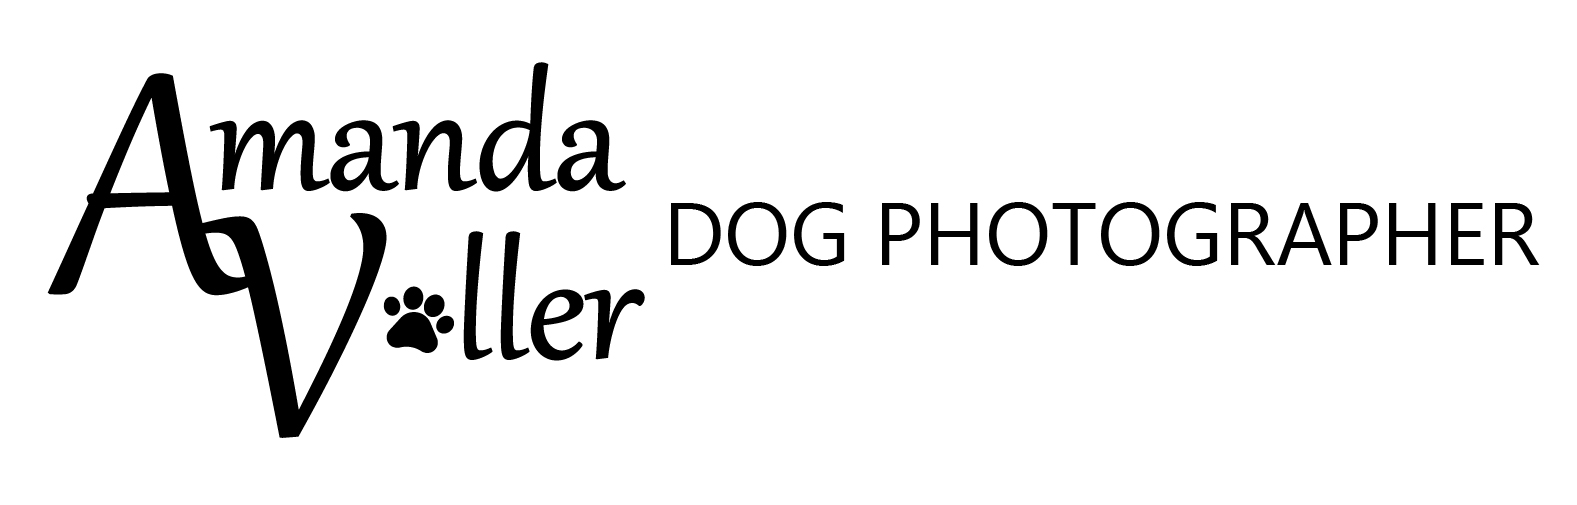 Surrey Dog photographer